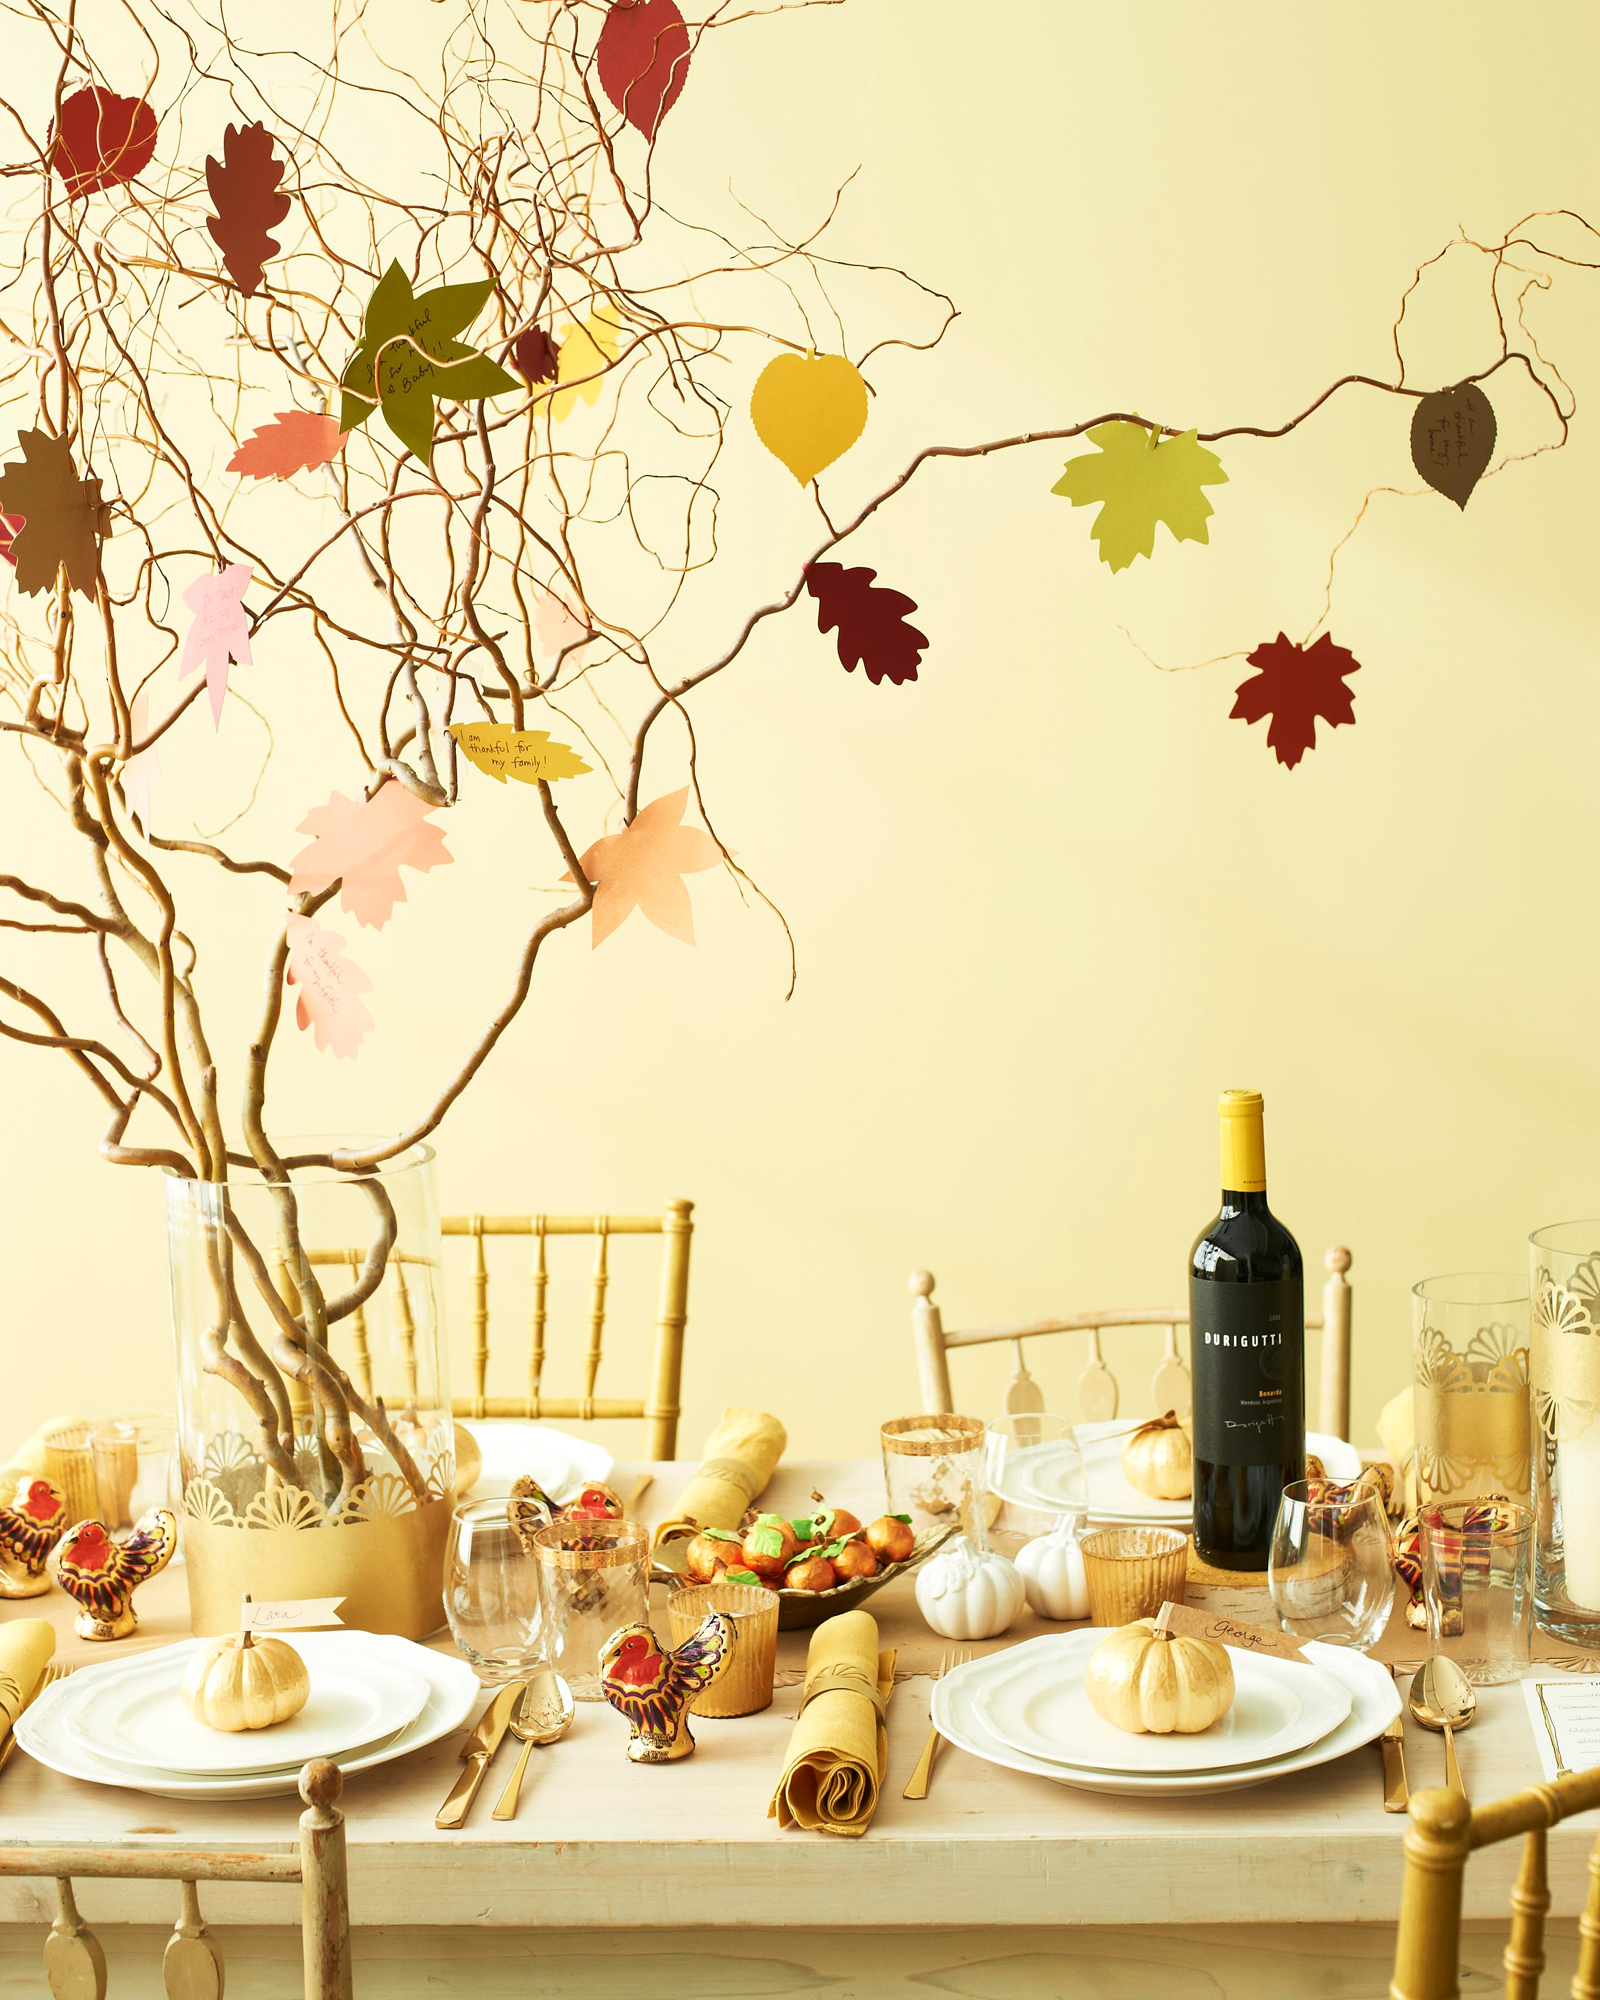 Darcy Miller s Thanksgiving Table Brings Kids and Adults